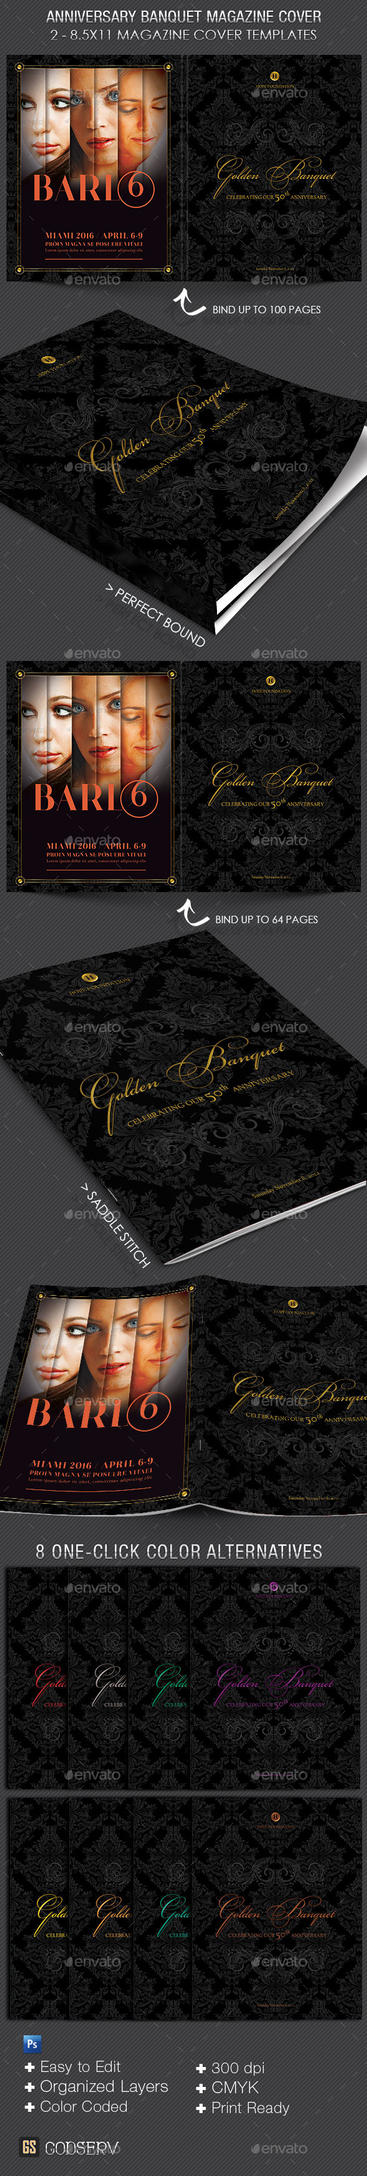 Anniversary Banquet Magazine Cover Template by Godserv